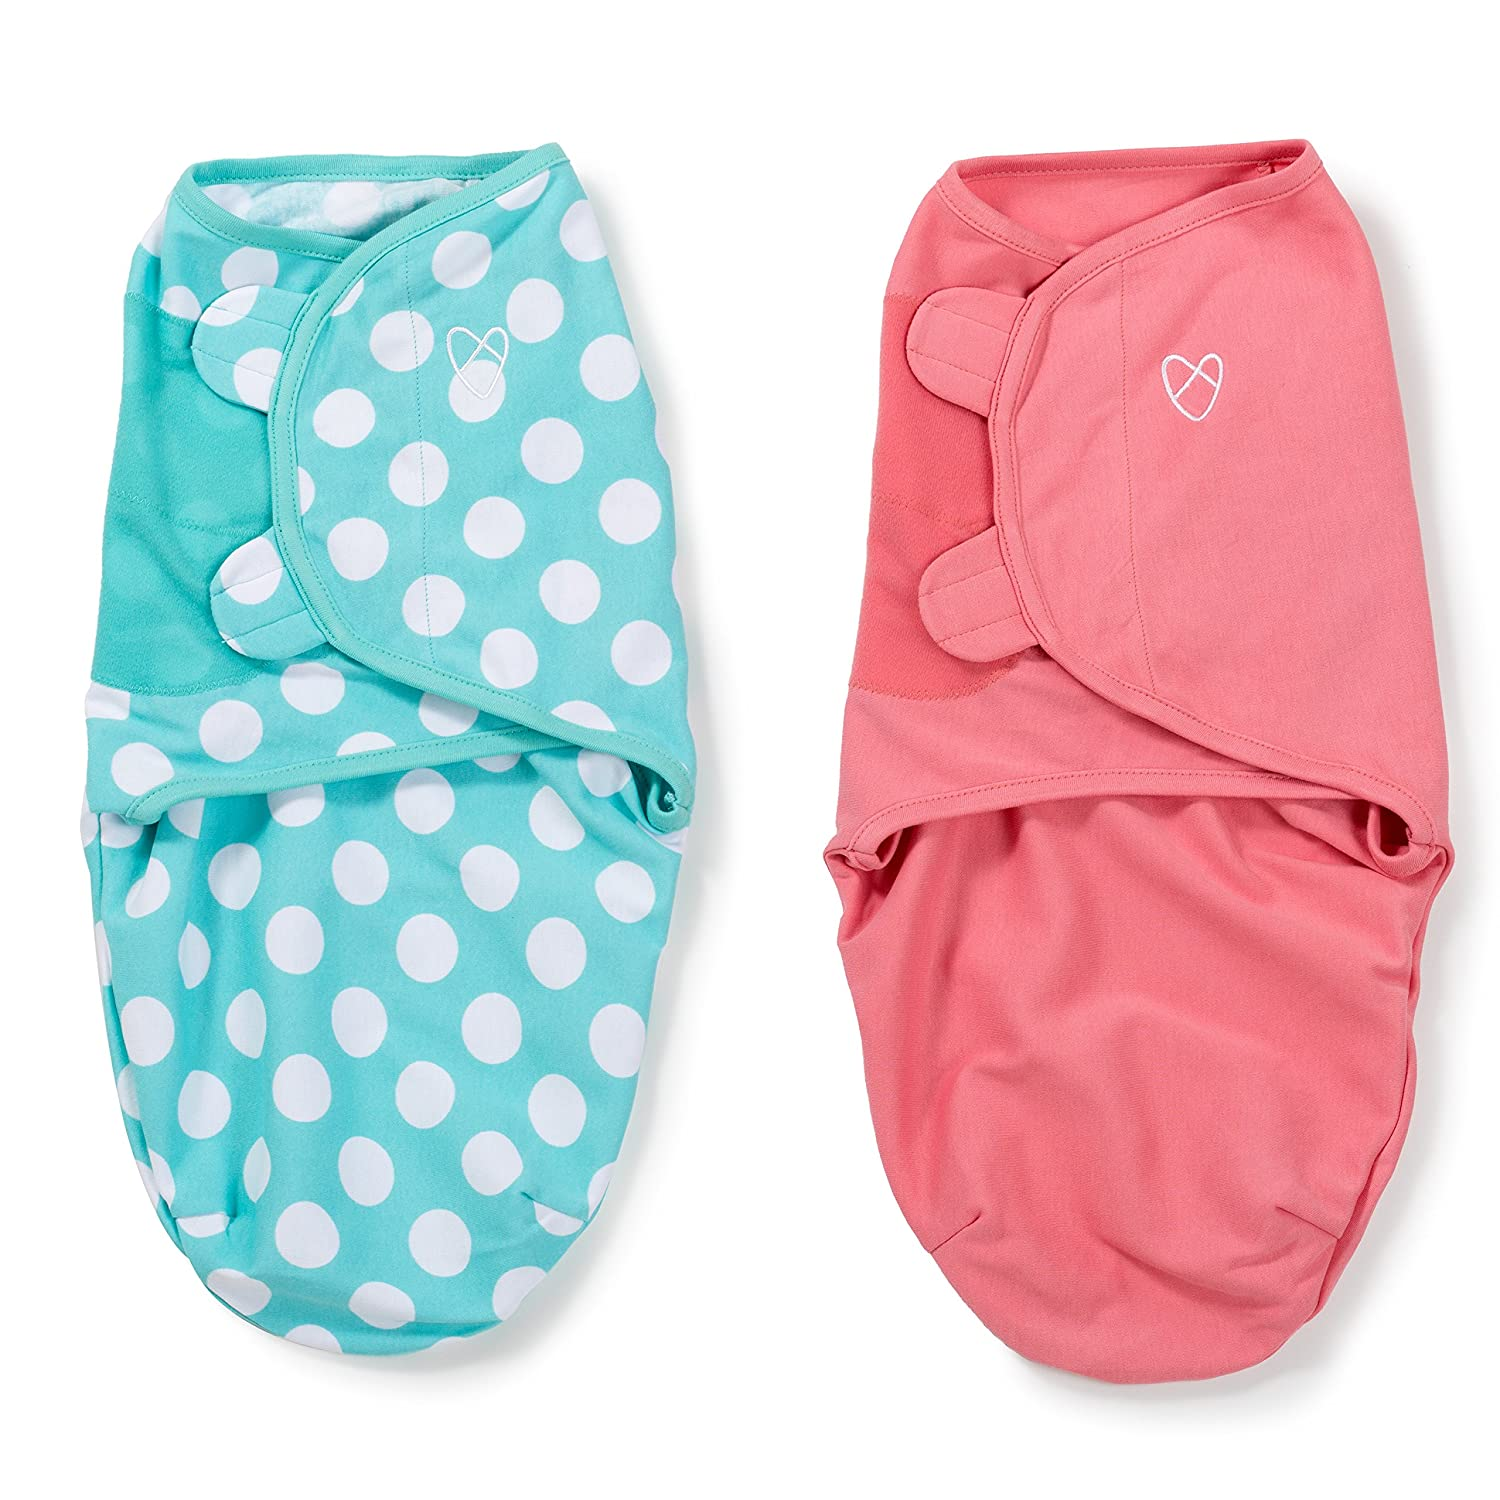 SwaddleMe Original Swaddle (Pink and Teal Dot Small, Pack of 2) 87206